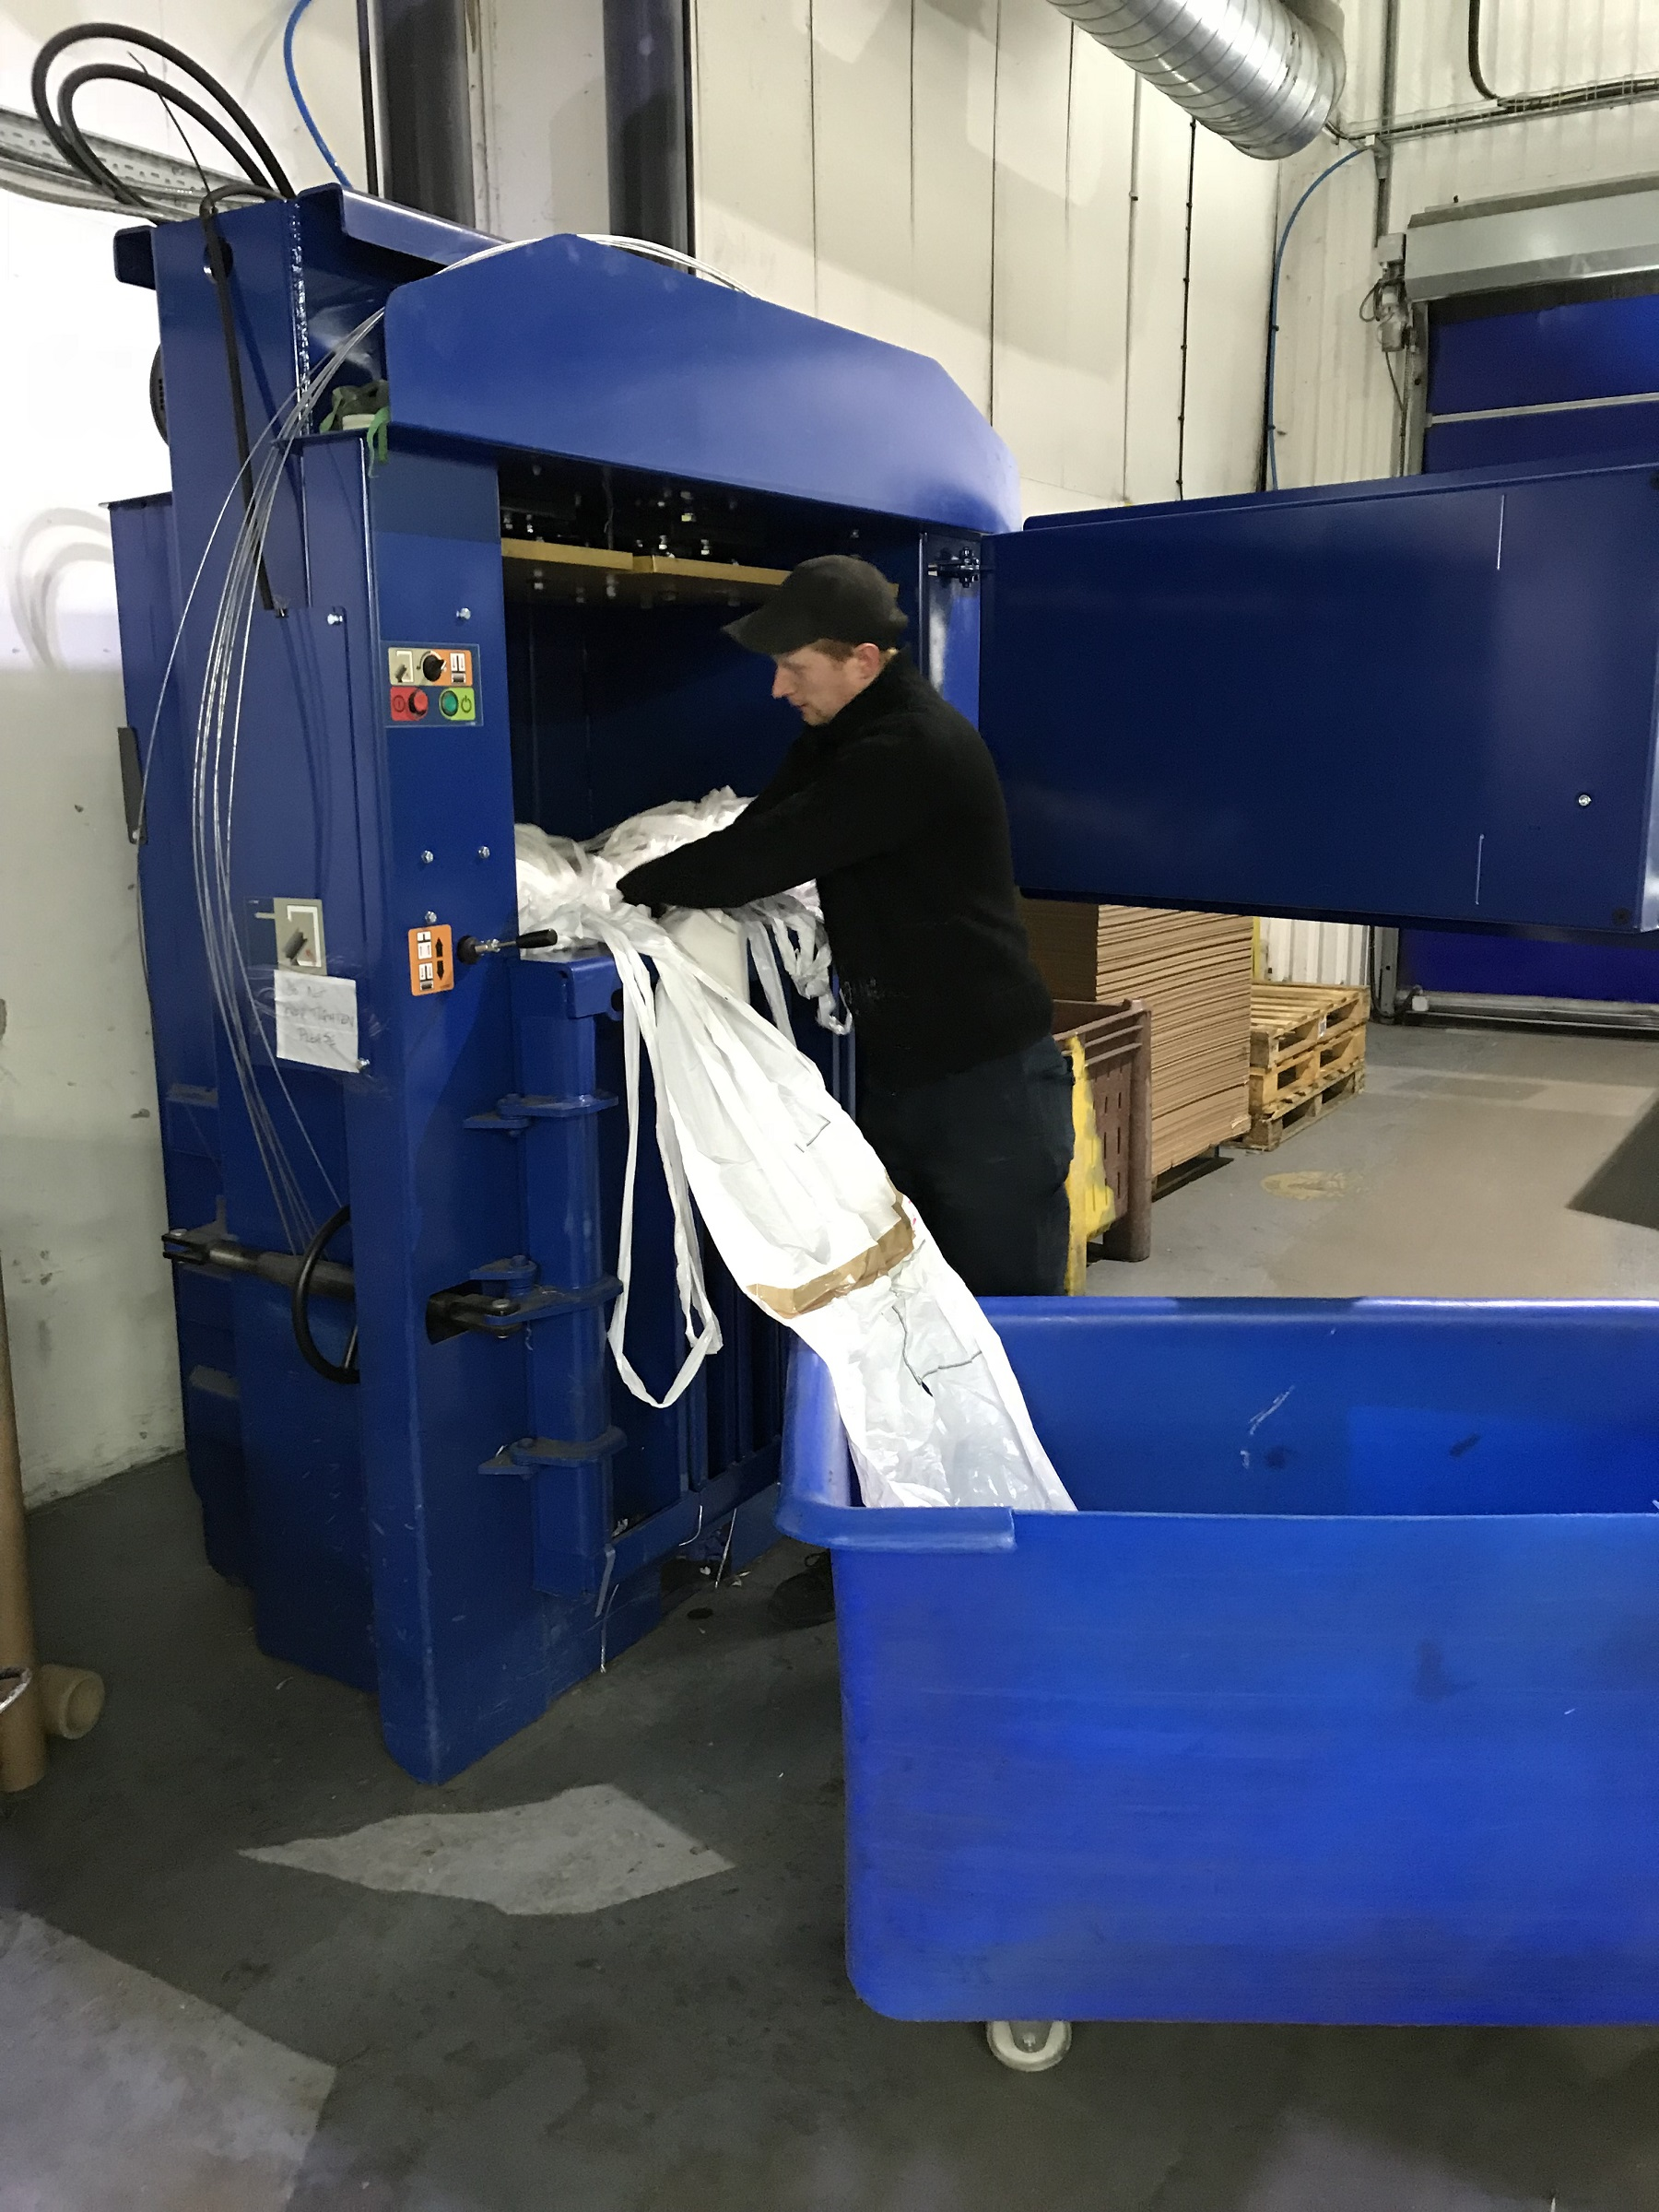 Printing company returns to Riverside for baling needs